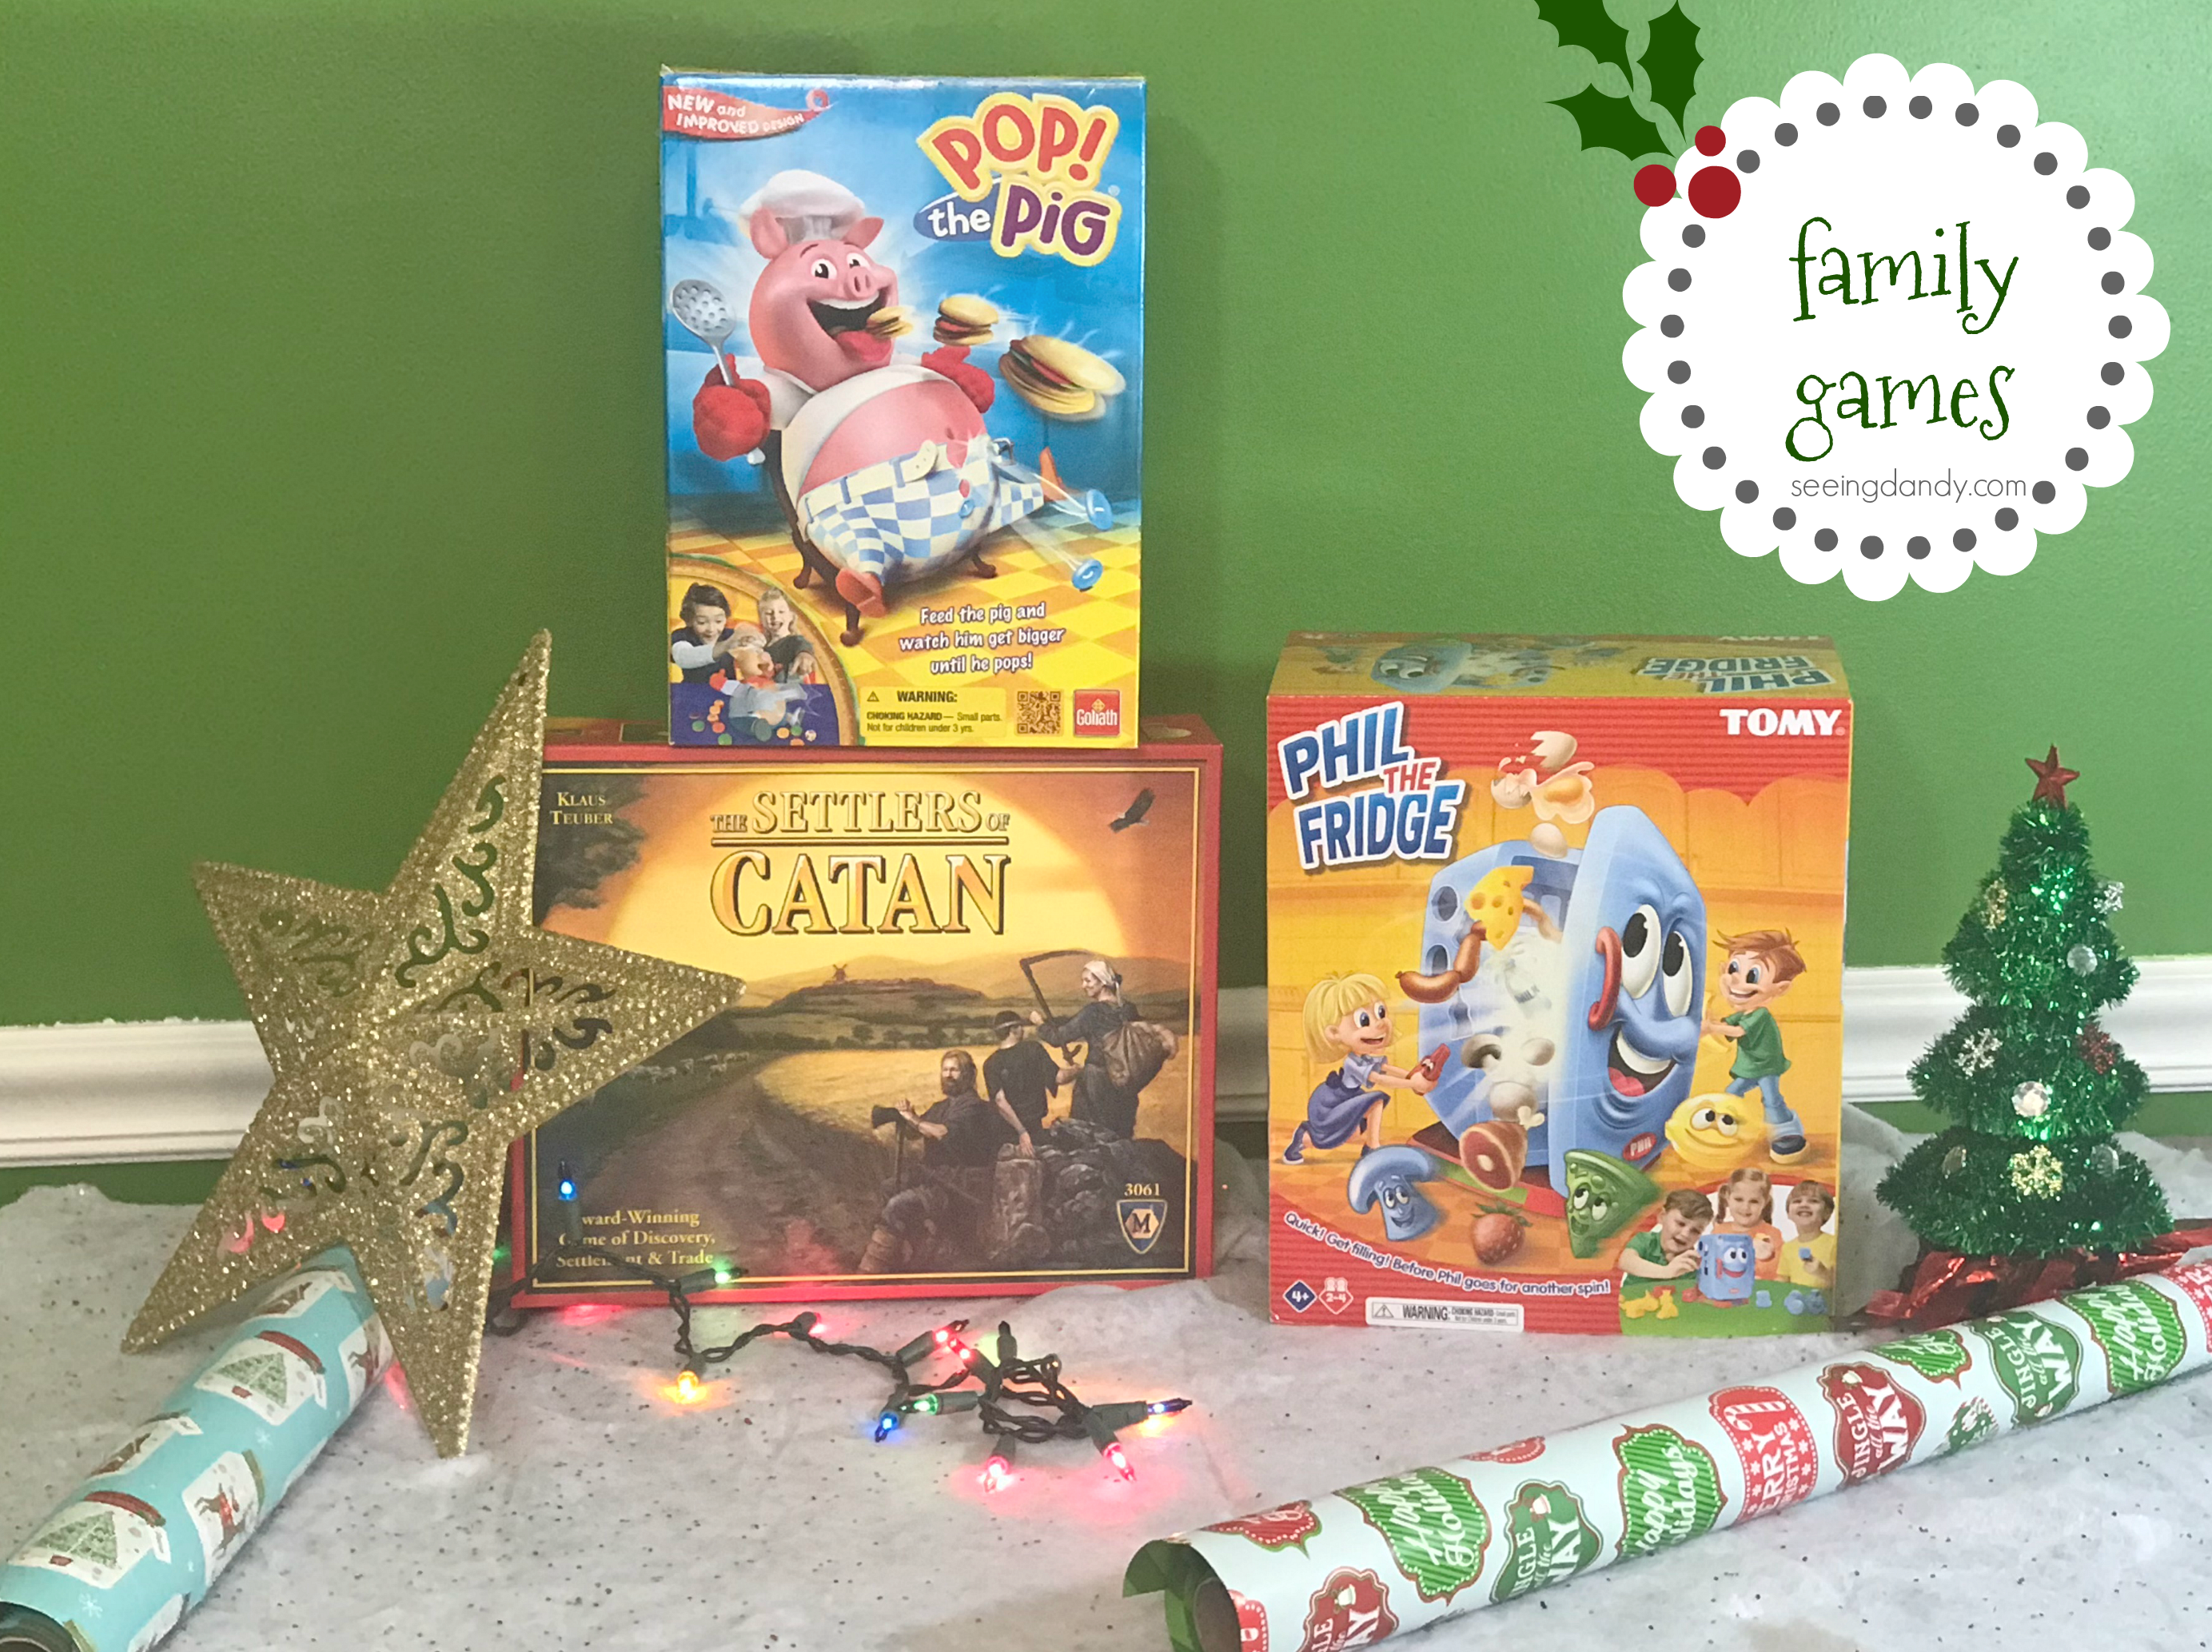 Games like Pop the Pig, Settler of Catan, and Phil the Fridge make great holiday toys for gift giving.